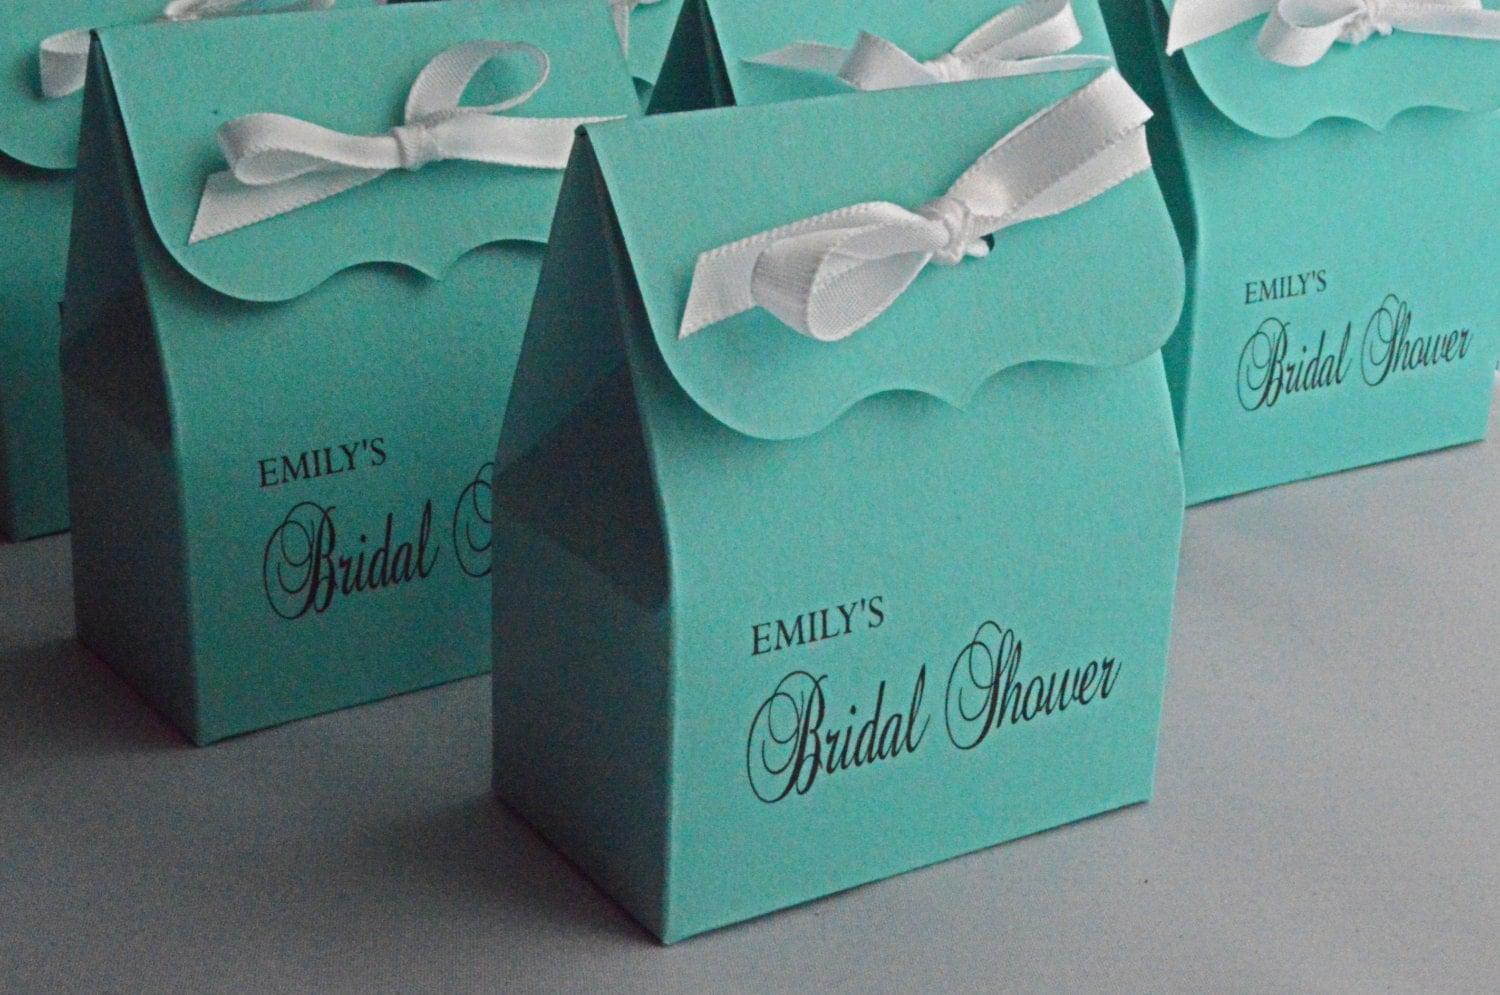 Wedding Shower Goodie Bag Ideas : Bridal Shower Favor Bags in blue with white Ribbon